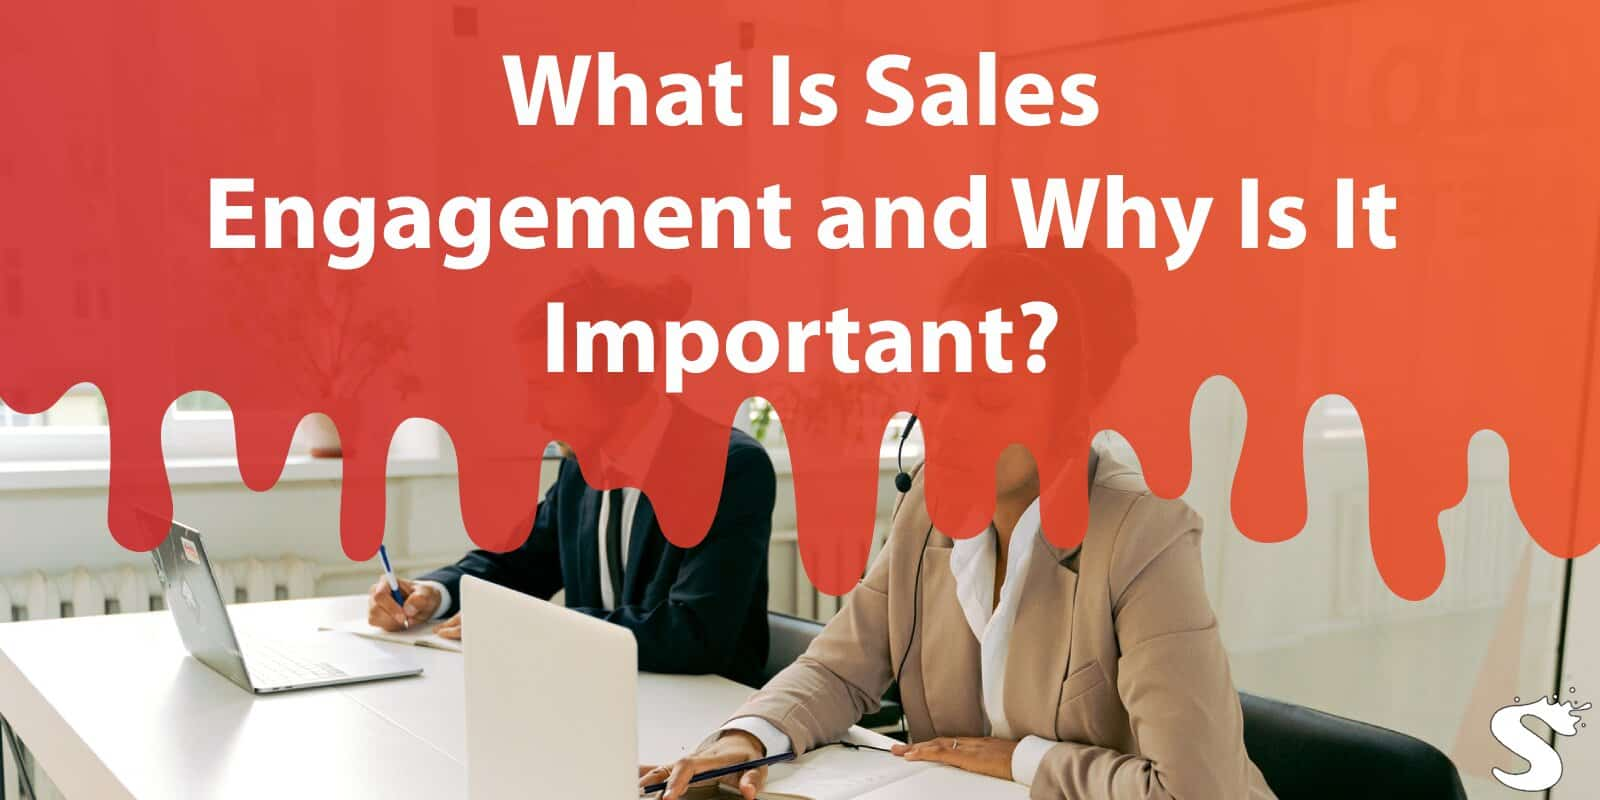 What Is Sales Engagement and Why Is It Important?